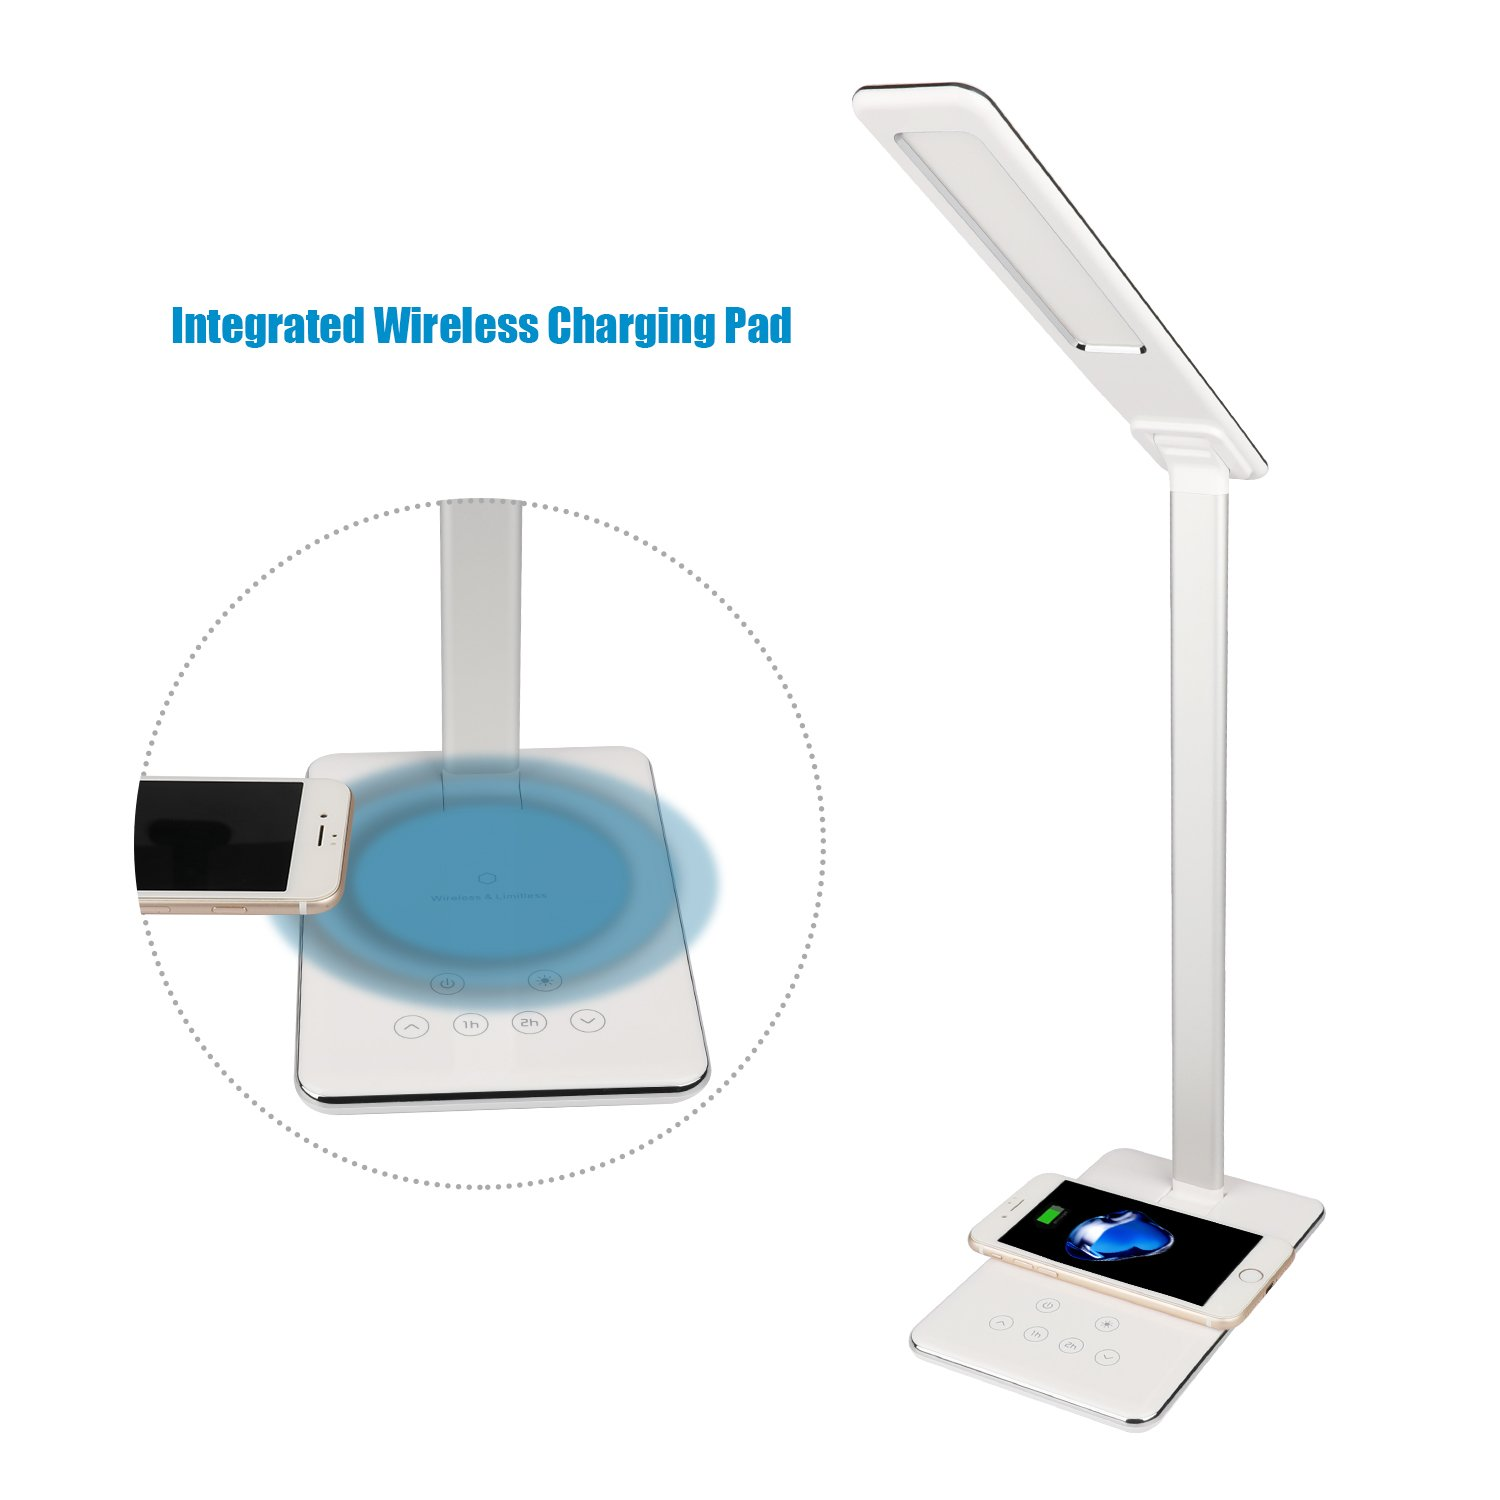 MACASA Led Desk Lamp Dimmable Table Lamp with Qi Wireless Charger for iPhone X / 8 Plus,4 Color Temperatures 6 Adjustable Brightness,Timer Setting,USB Charging Port,Touch Control& Memory Function by MACASA (Image #3)